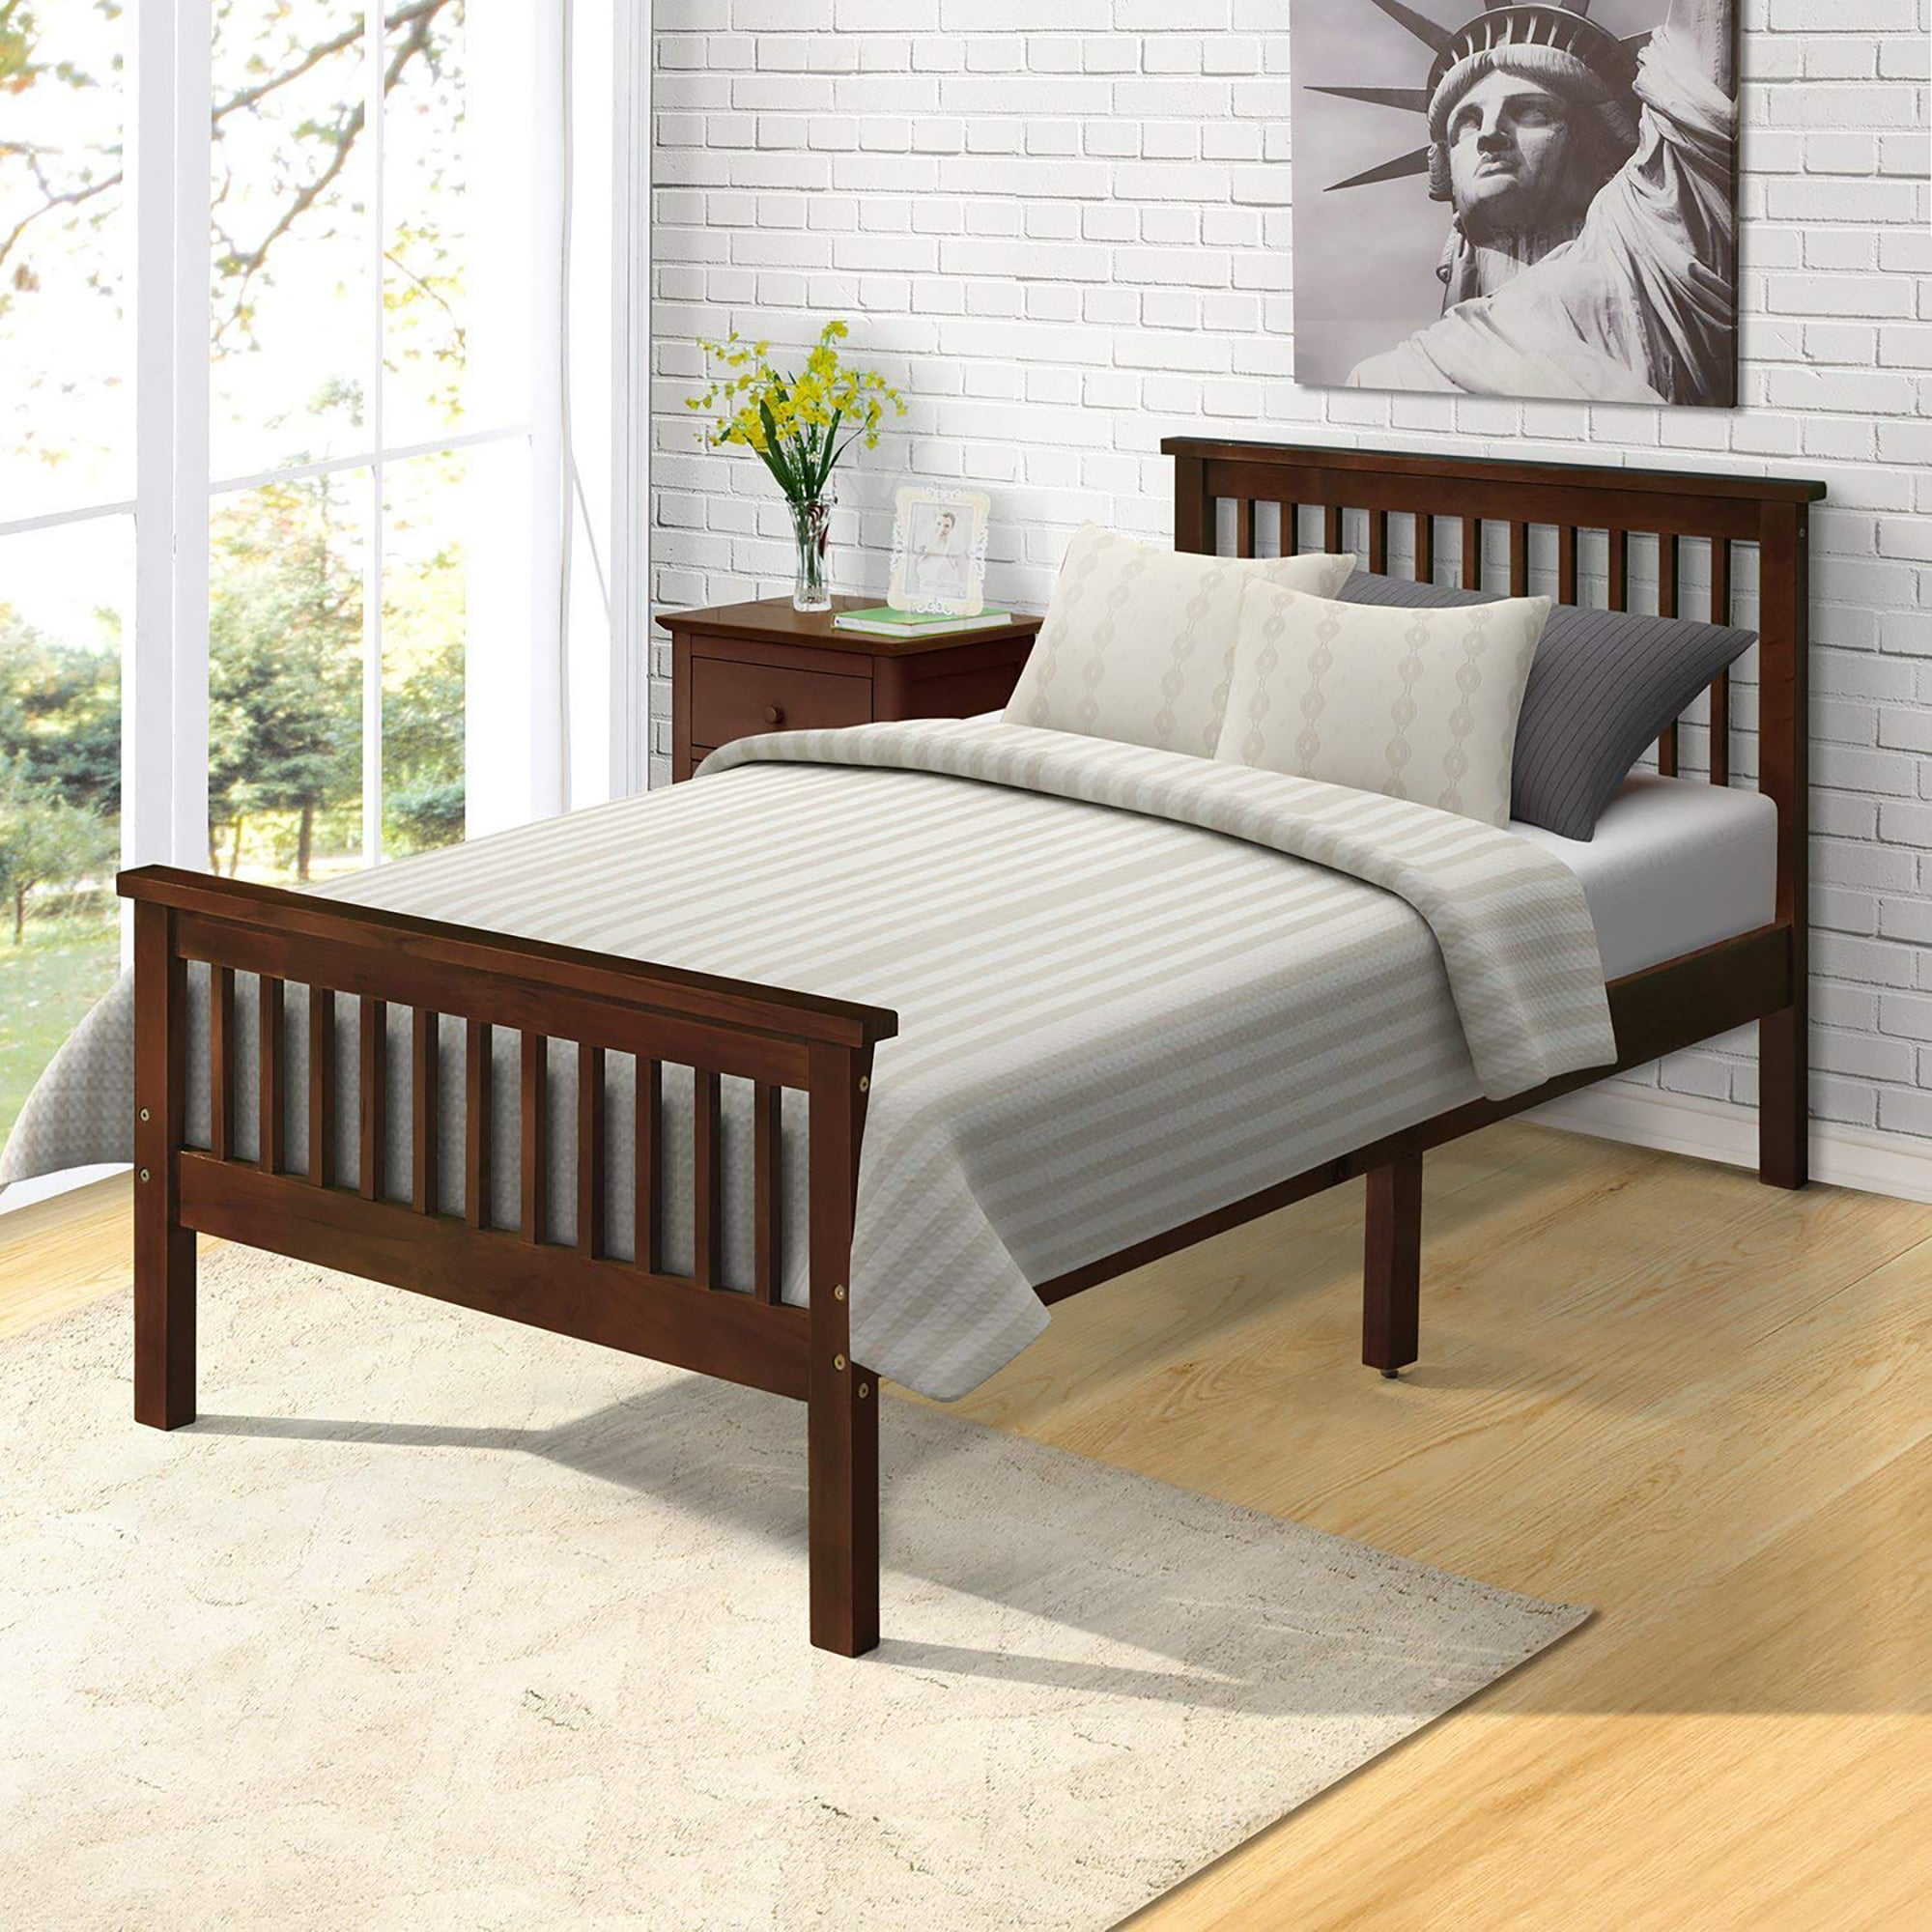 Platform Bed Frame Kids Bed with Headboard and Footboard ...